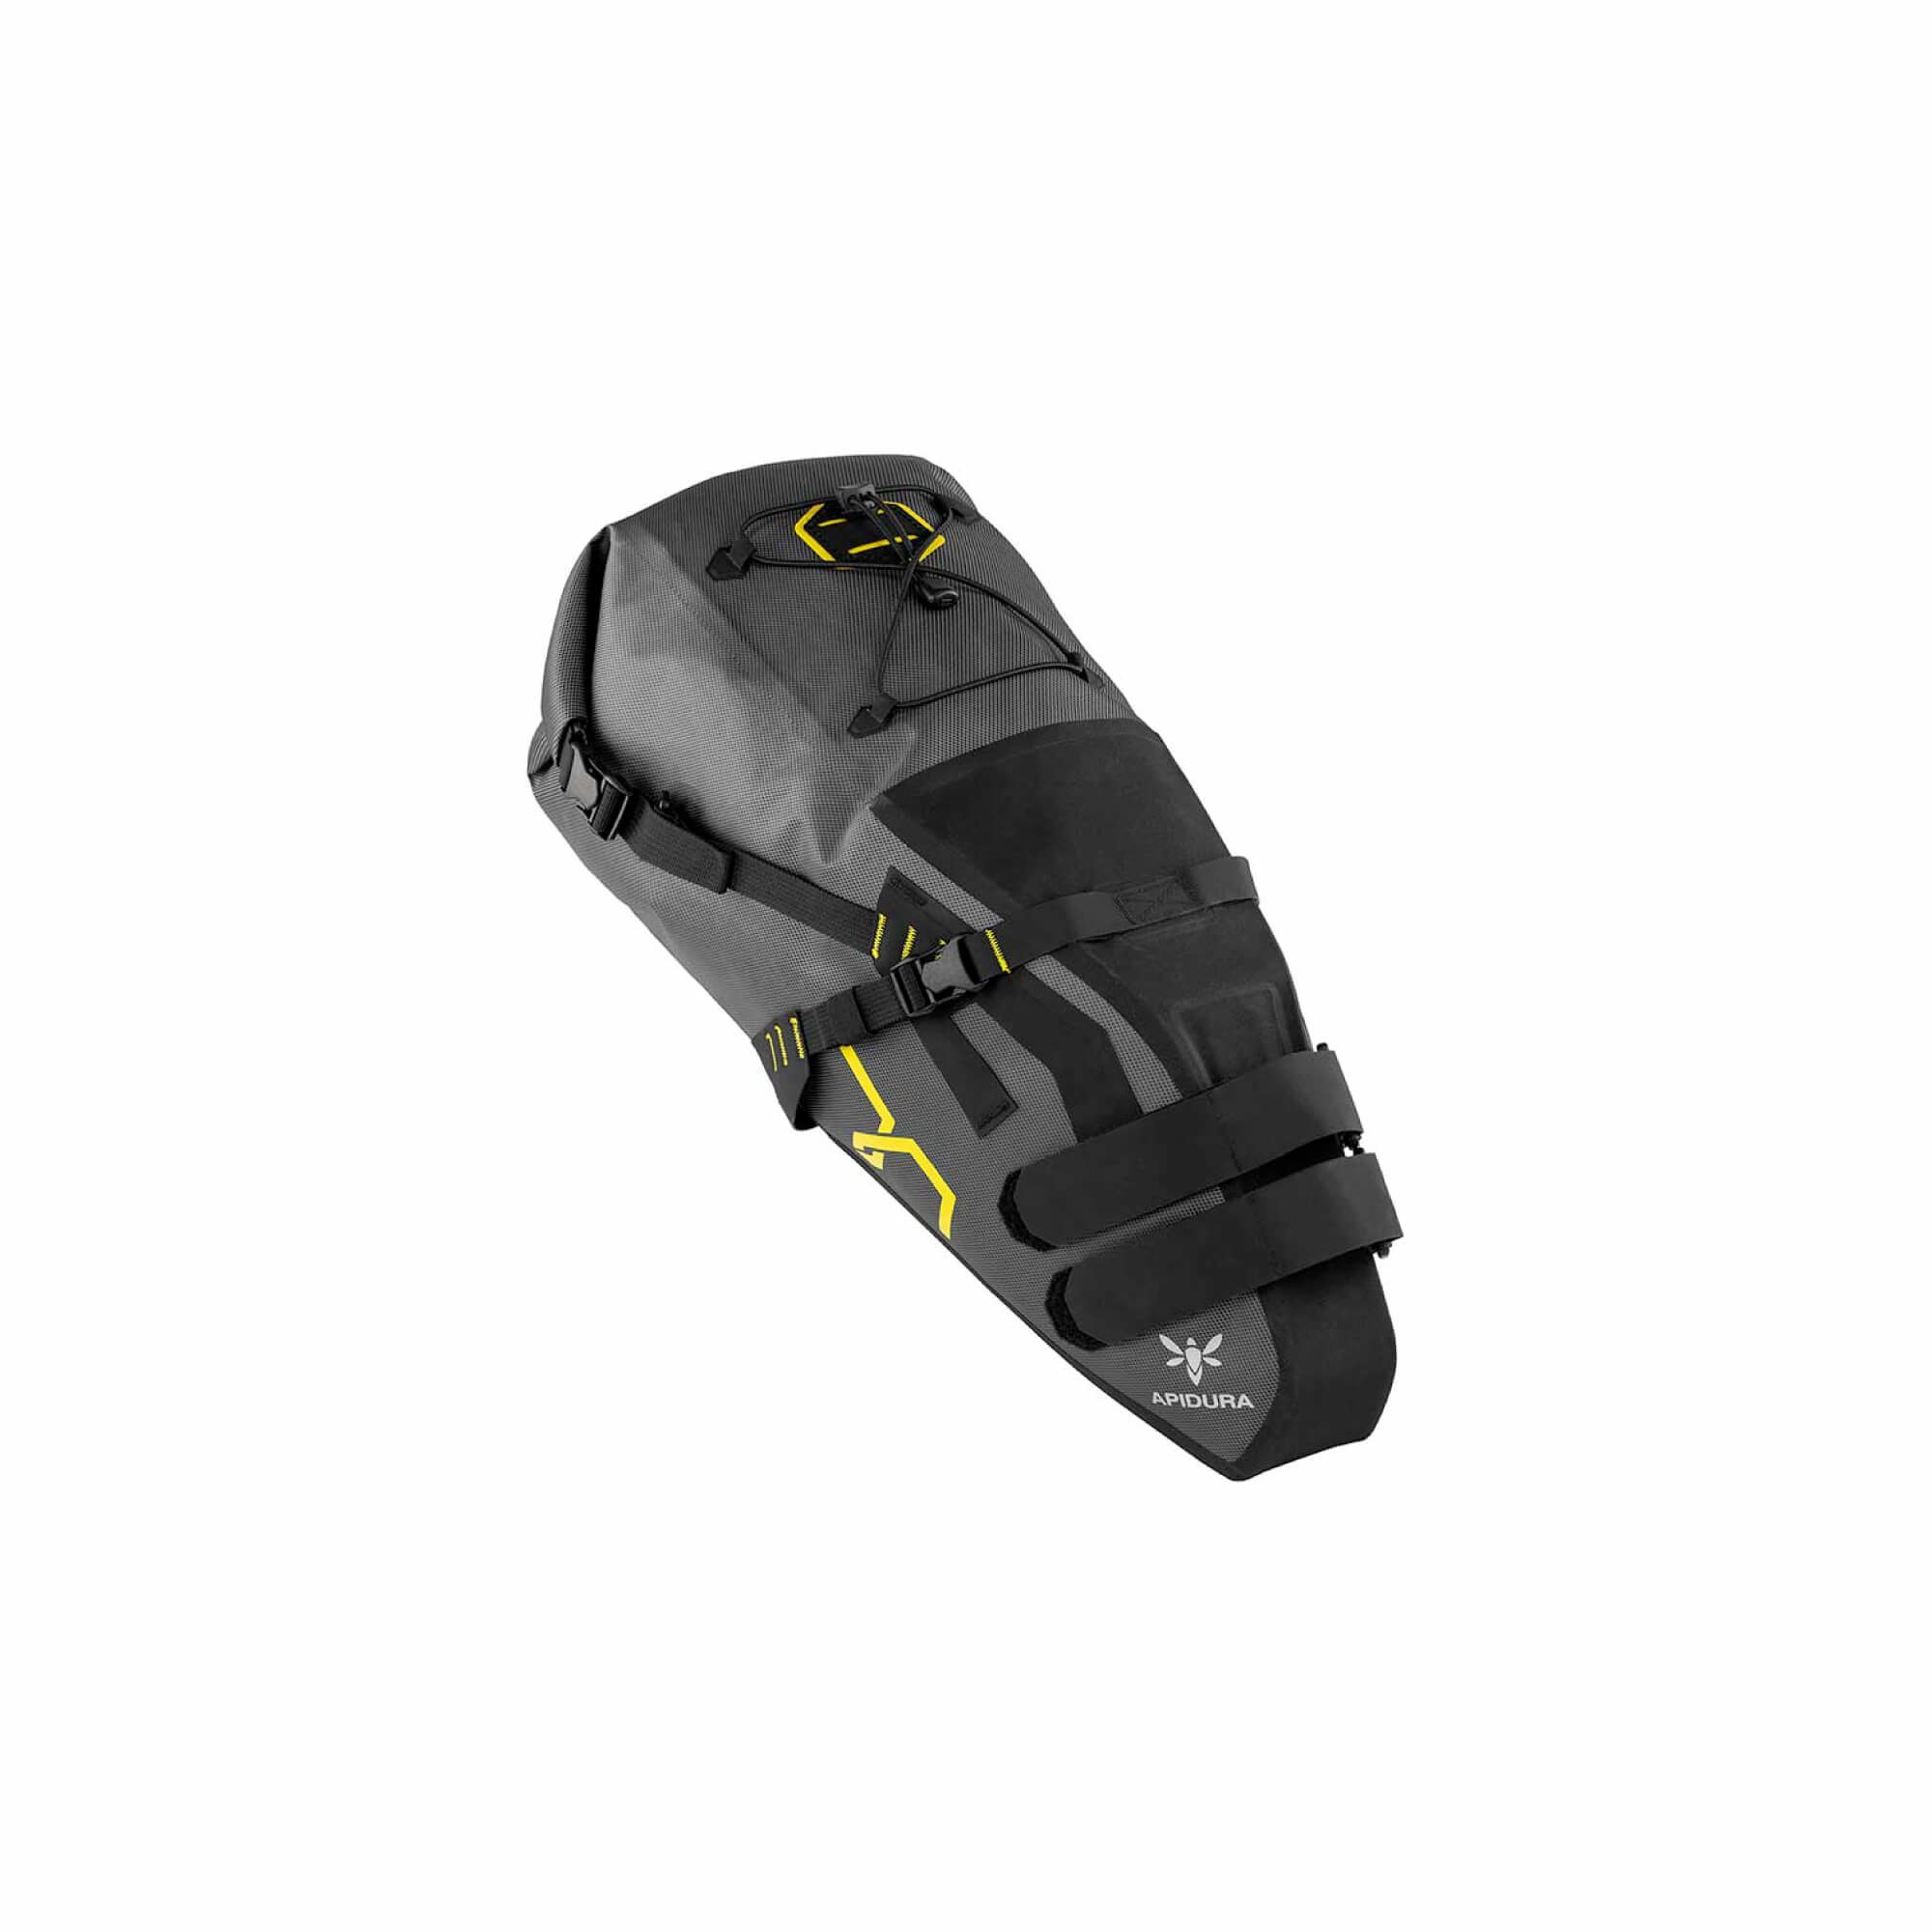 Expedition Saddle Pack-11